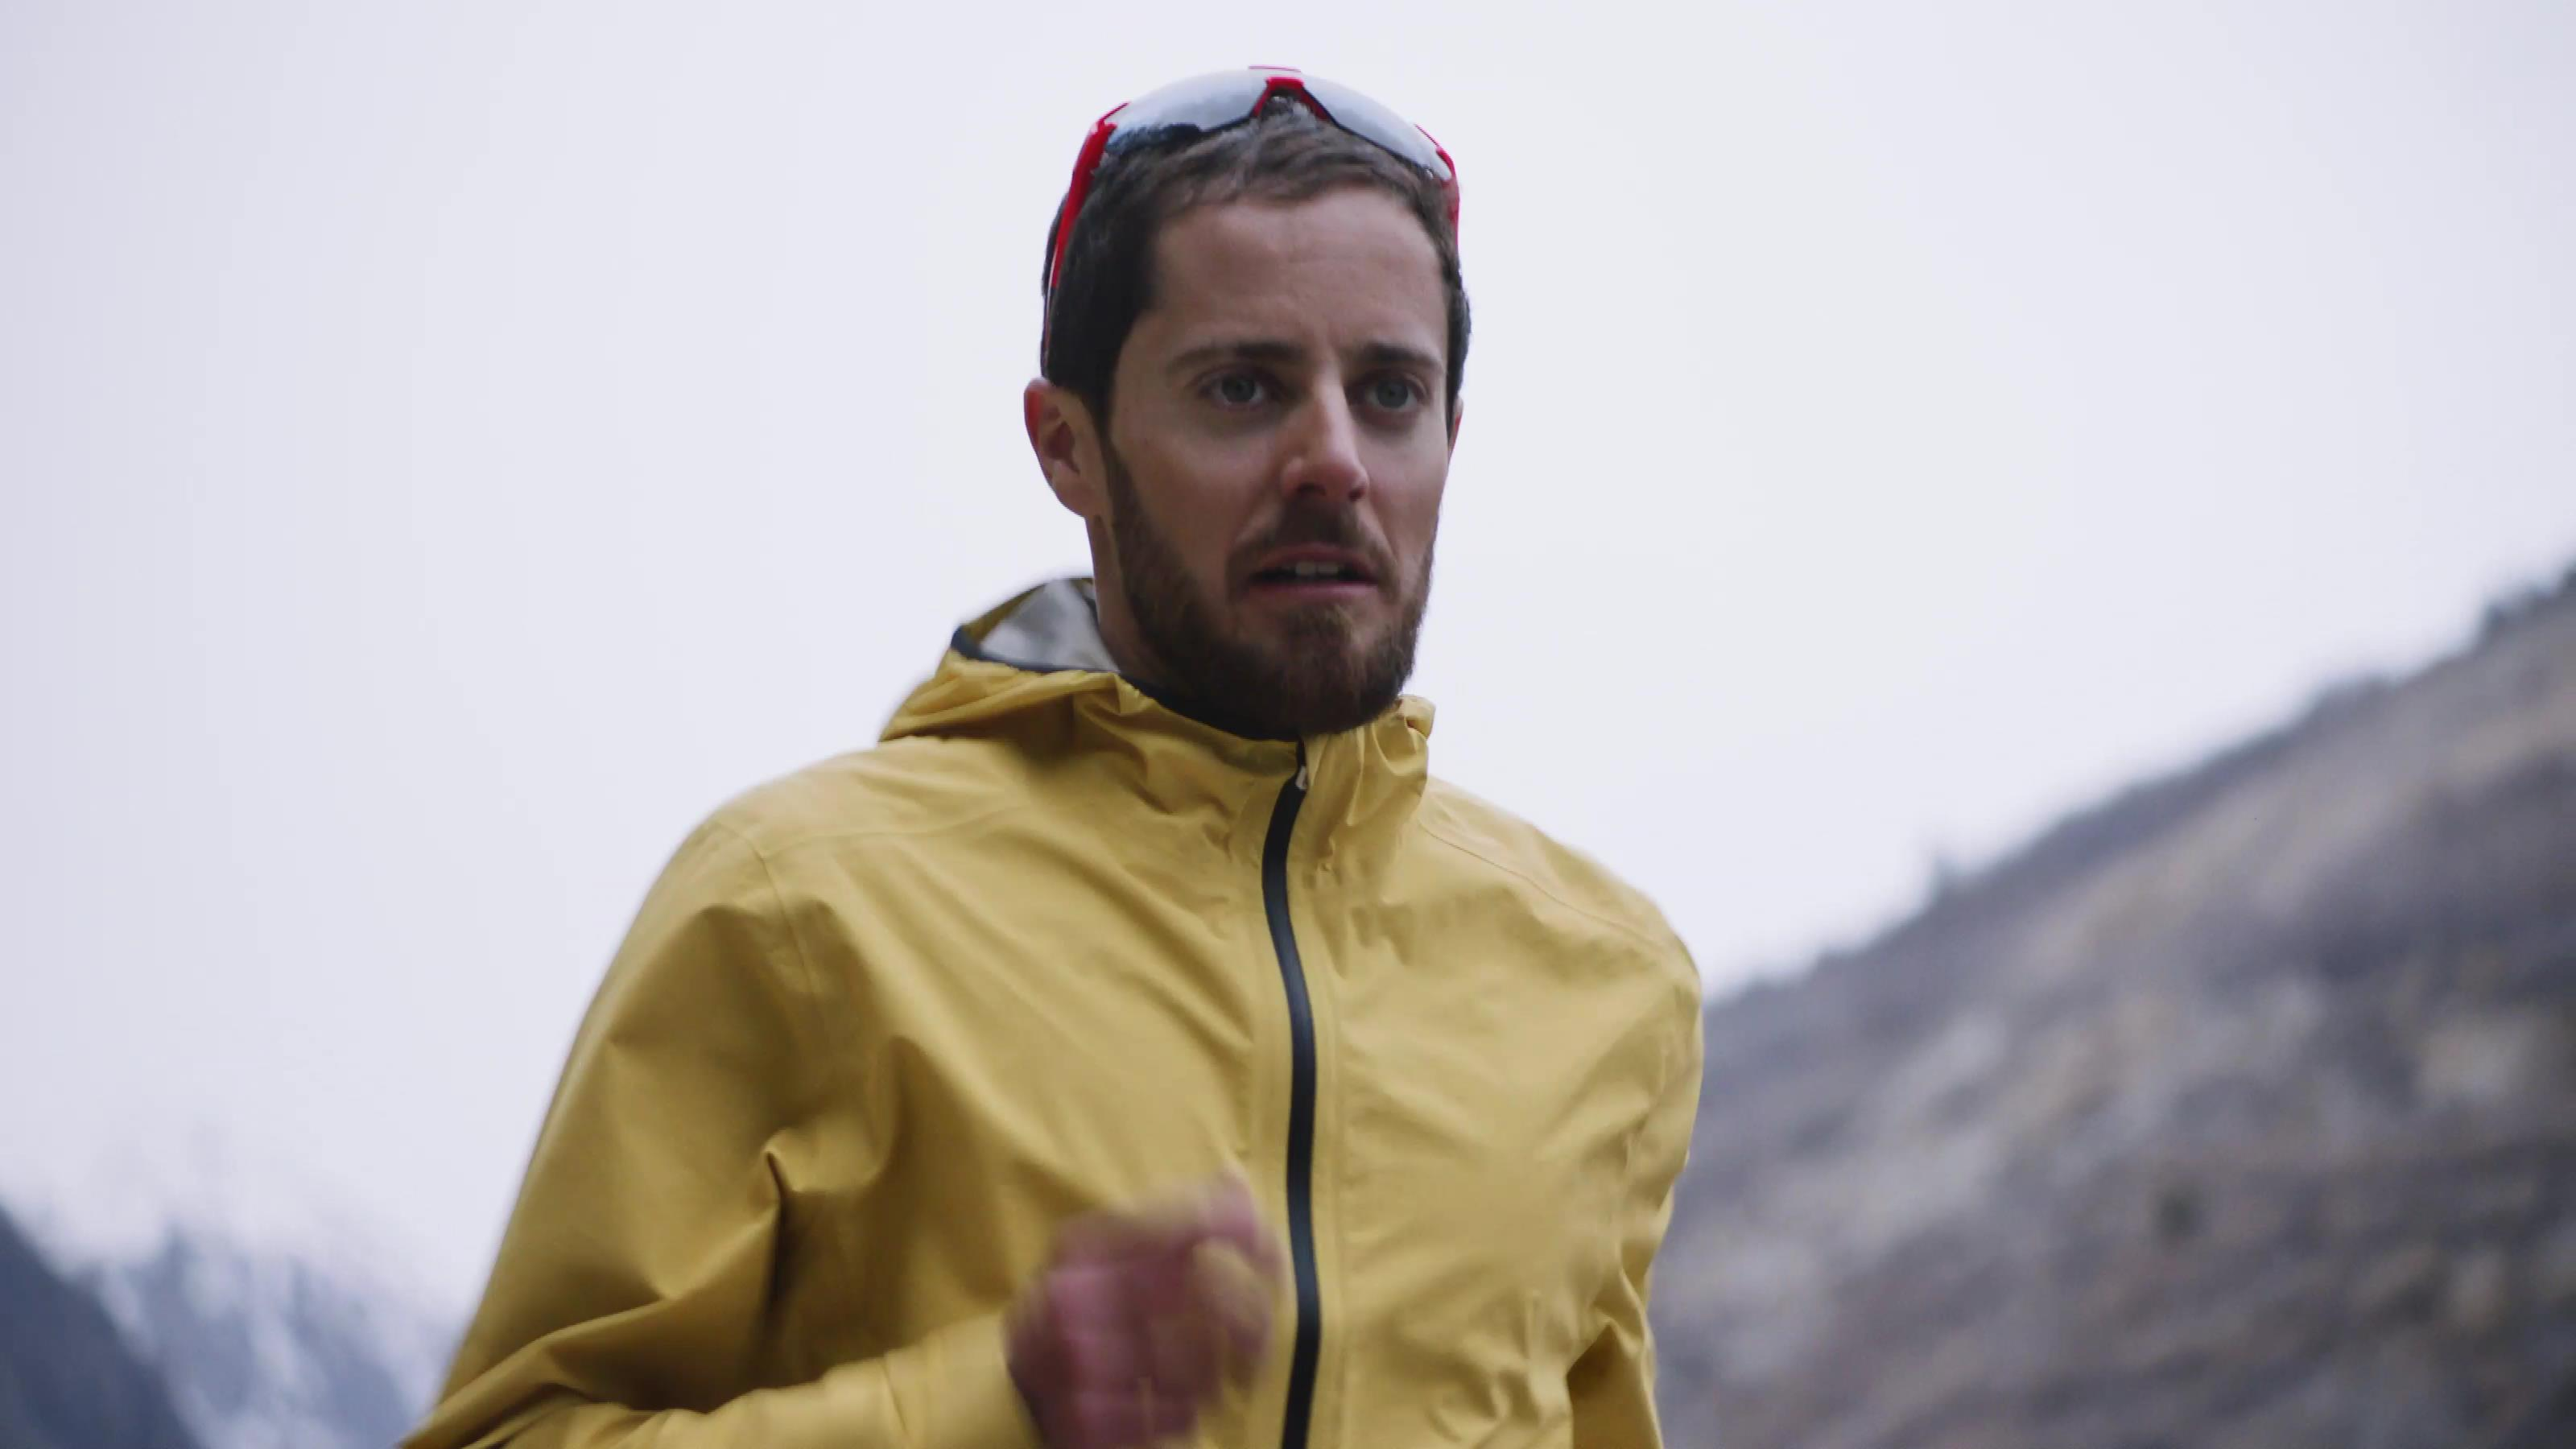 Mr Porter Why I Run: The Ultra Runner